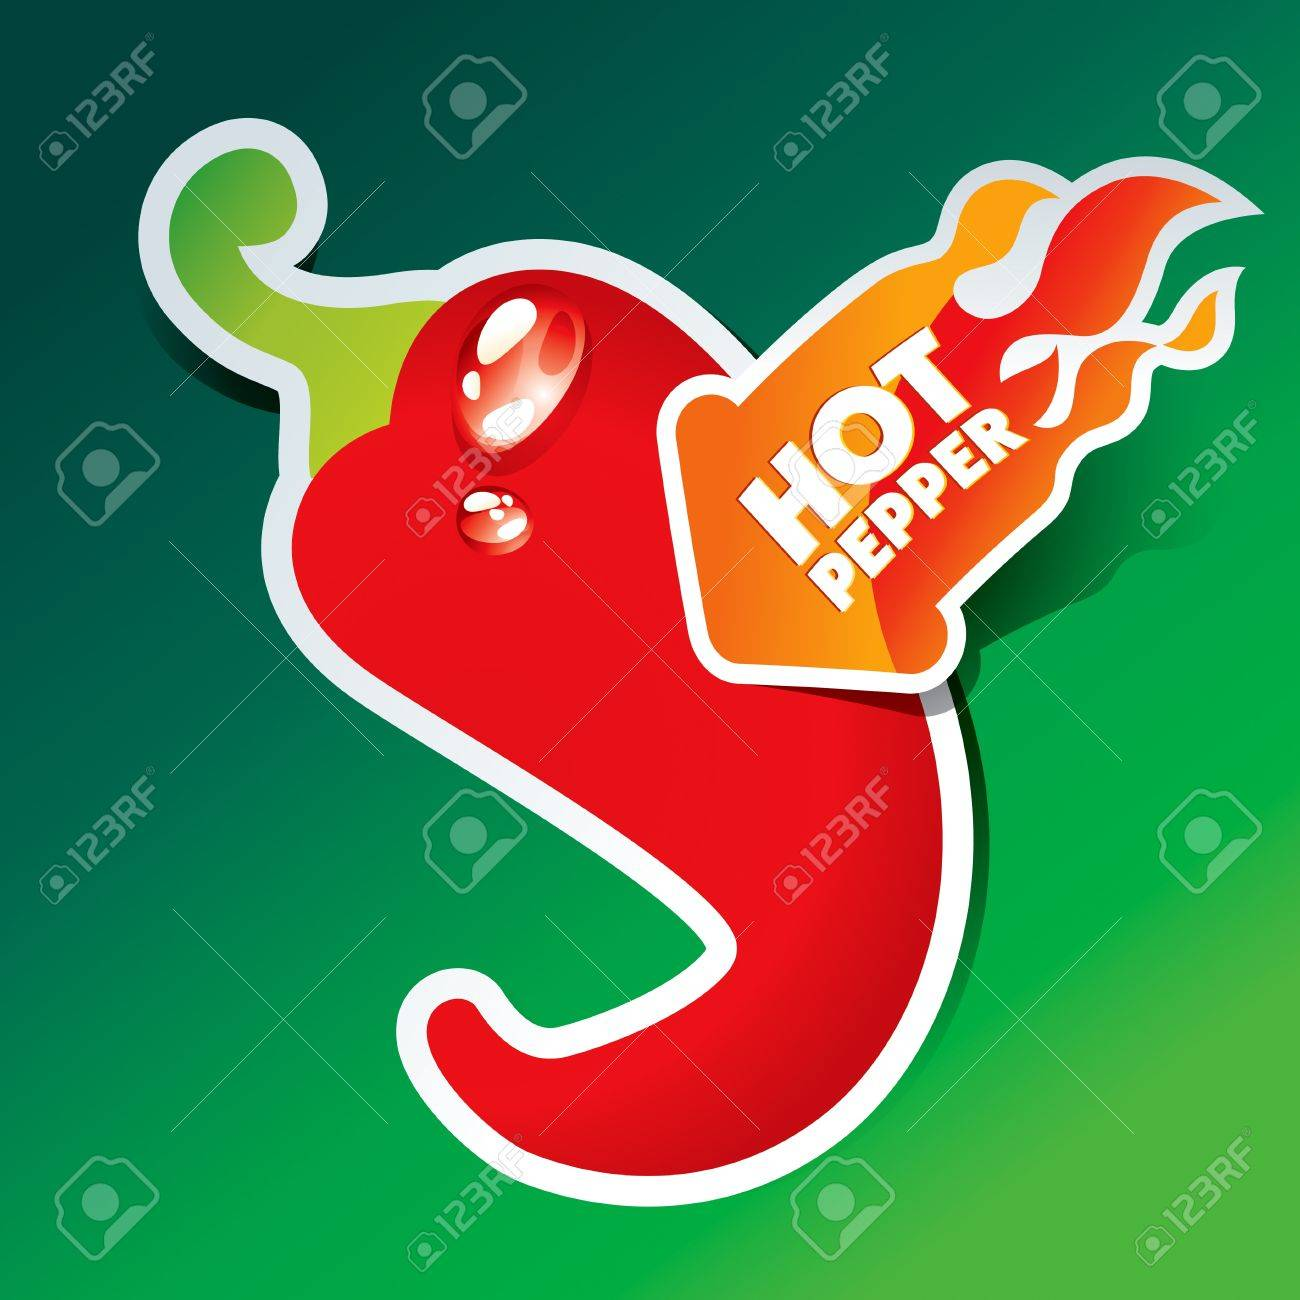 Icon of red hot chili pepper with flaming arrow. Vector illustration. Stock Vector - 10593832